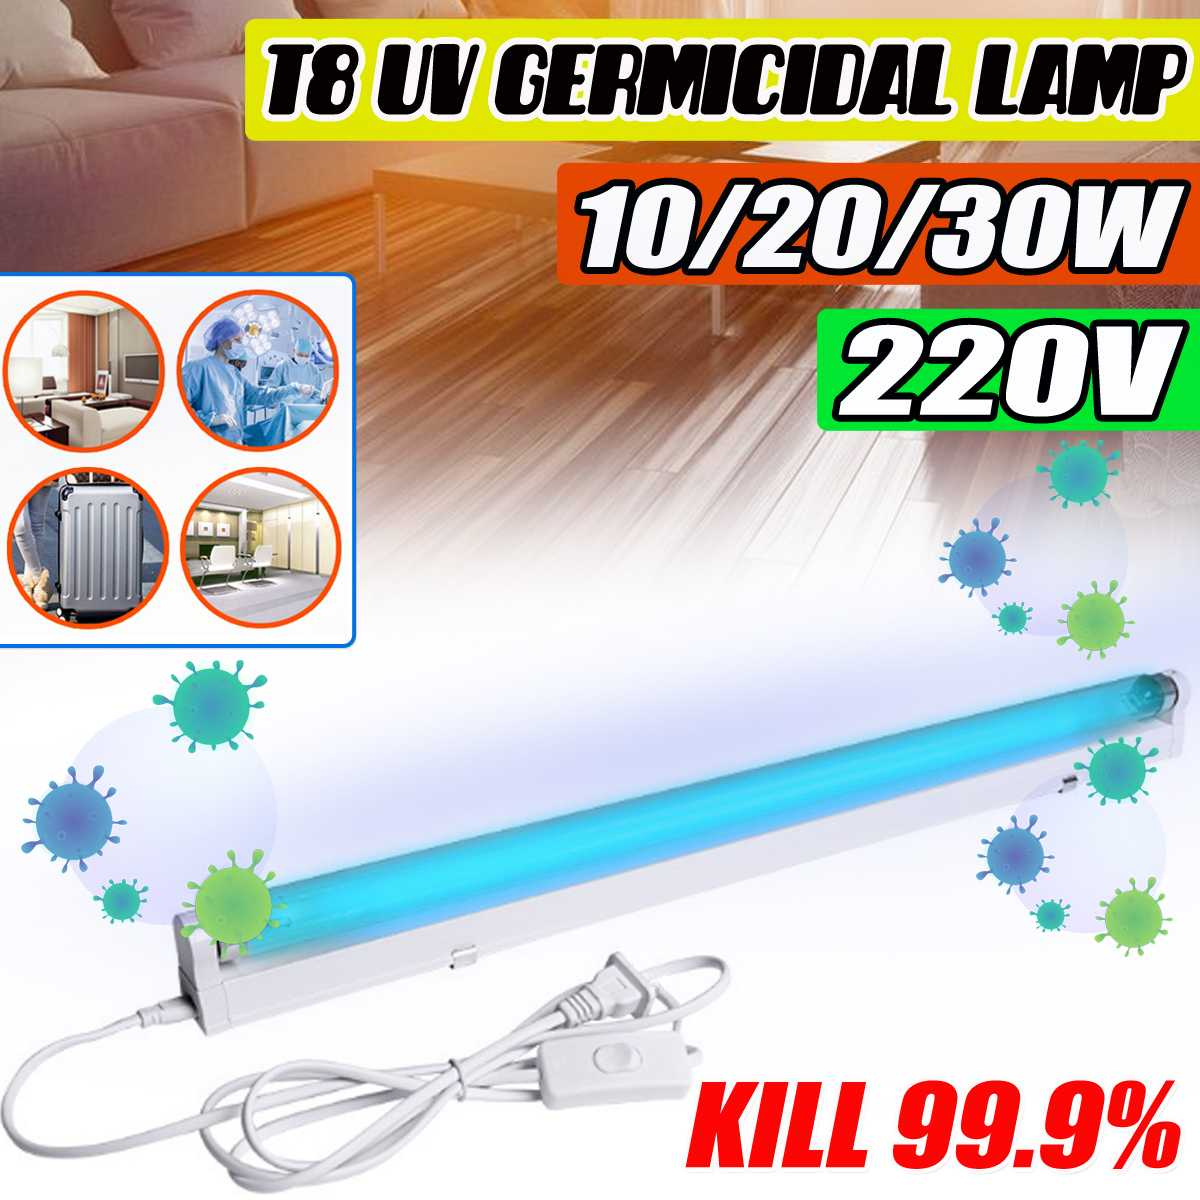 30W 20W 10W Uvc Lamp Sterilizer Lampe T8 Uv Light Led Tube Ultraviolet Germicidal Lamp Ozone Disinfection Lamp Kill Dust Mite